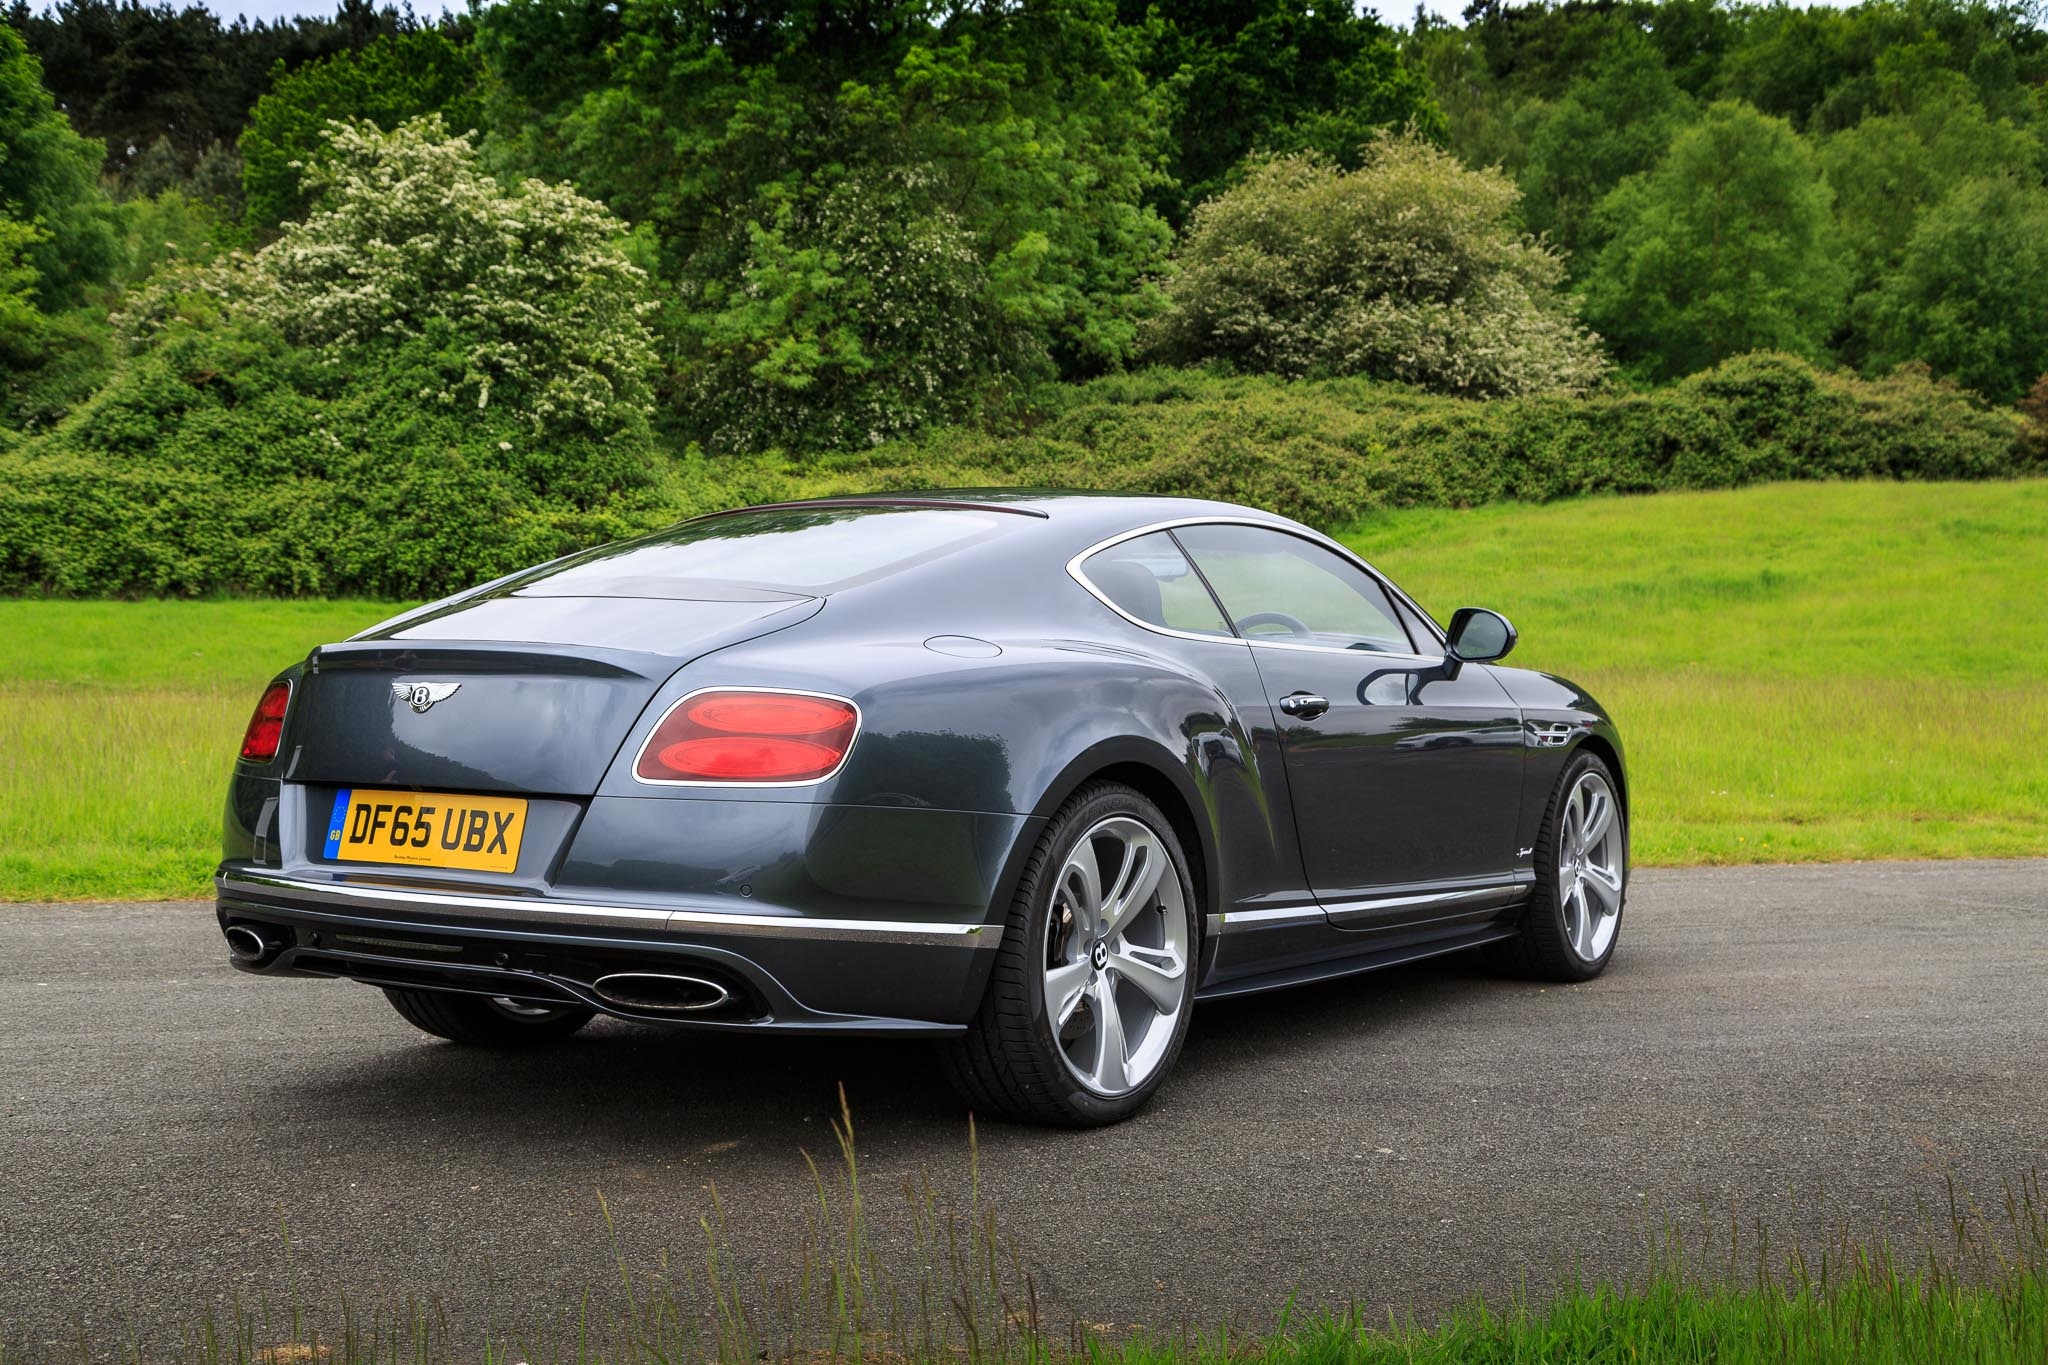 Great Car Wallpapers Bentley Continental Gt 2016 Review 626 Bhp And 820 Nm Of